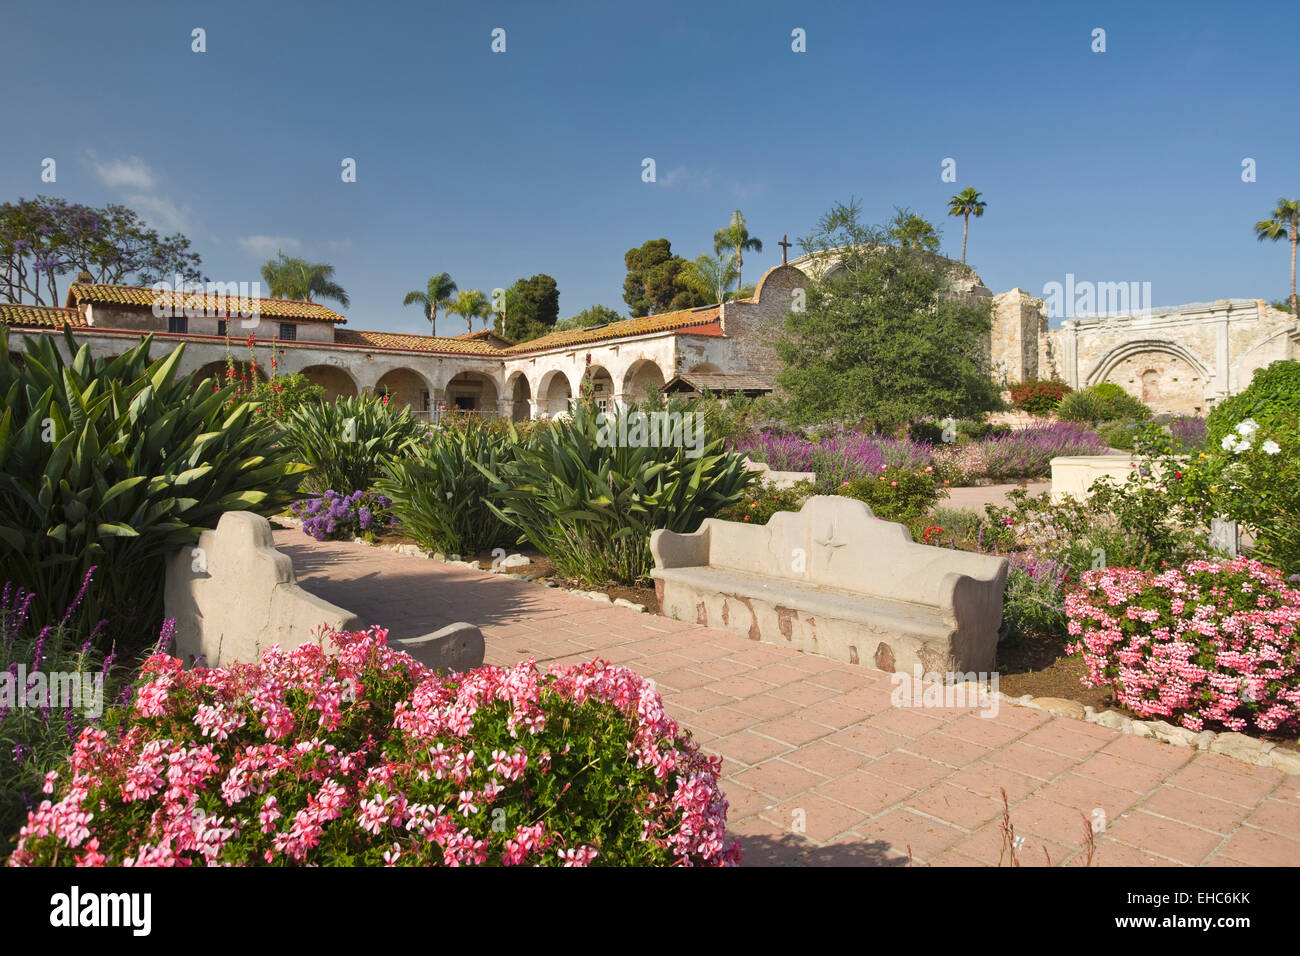 FLOWERS GARDENS GREAT STONE CHURCH RUINS MISSION SAN JUAN CAPISTRANO ORANGE COUNTY CALIFORNIA USA Stock Photo